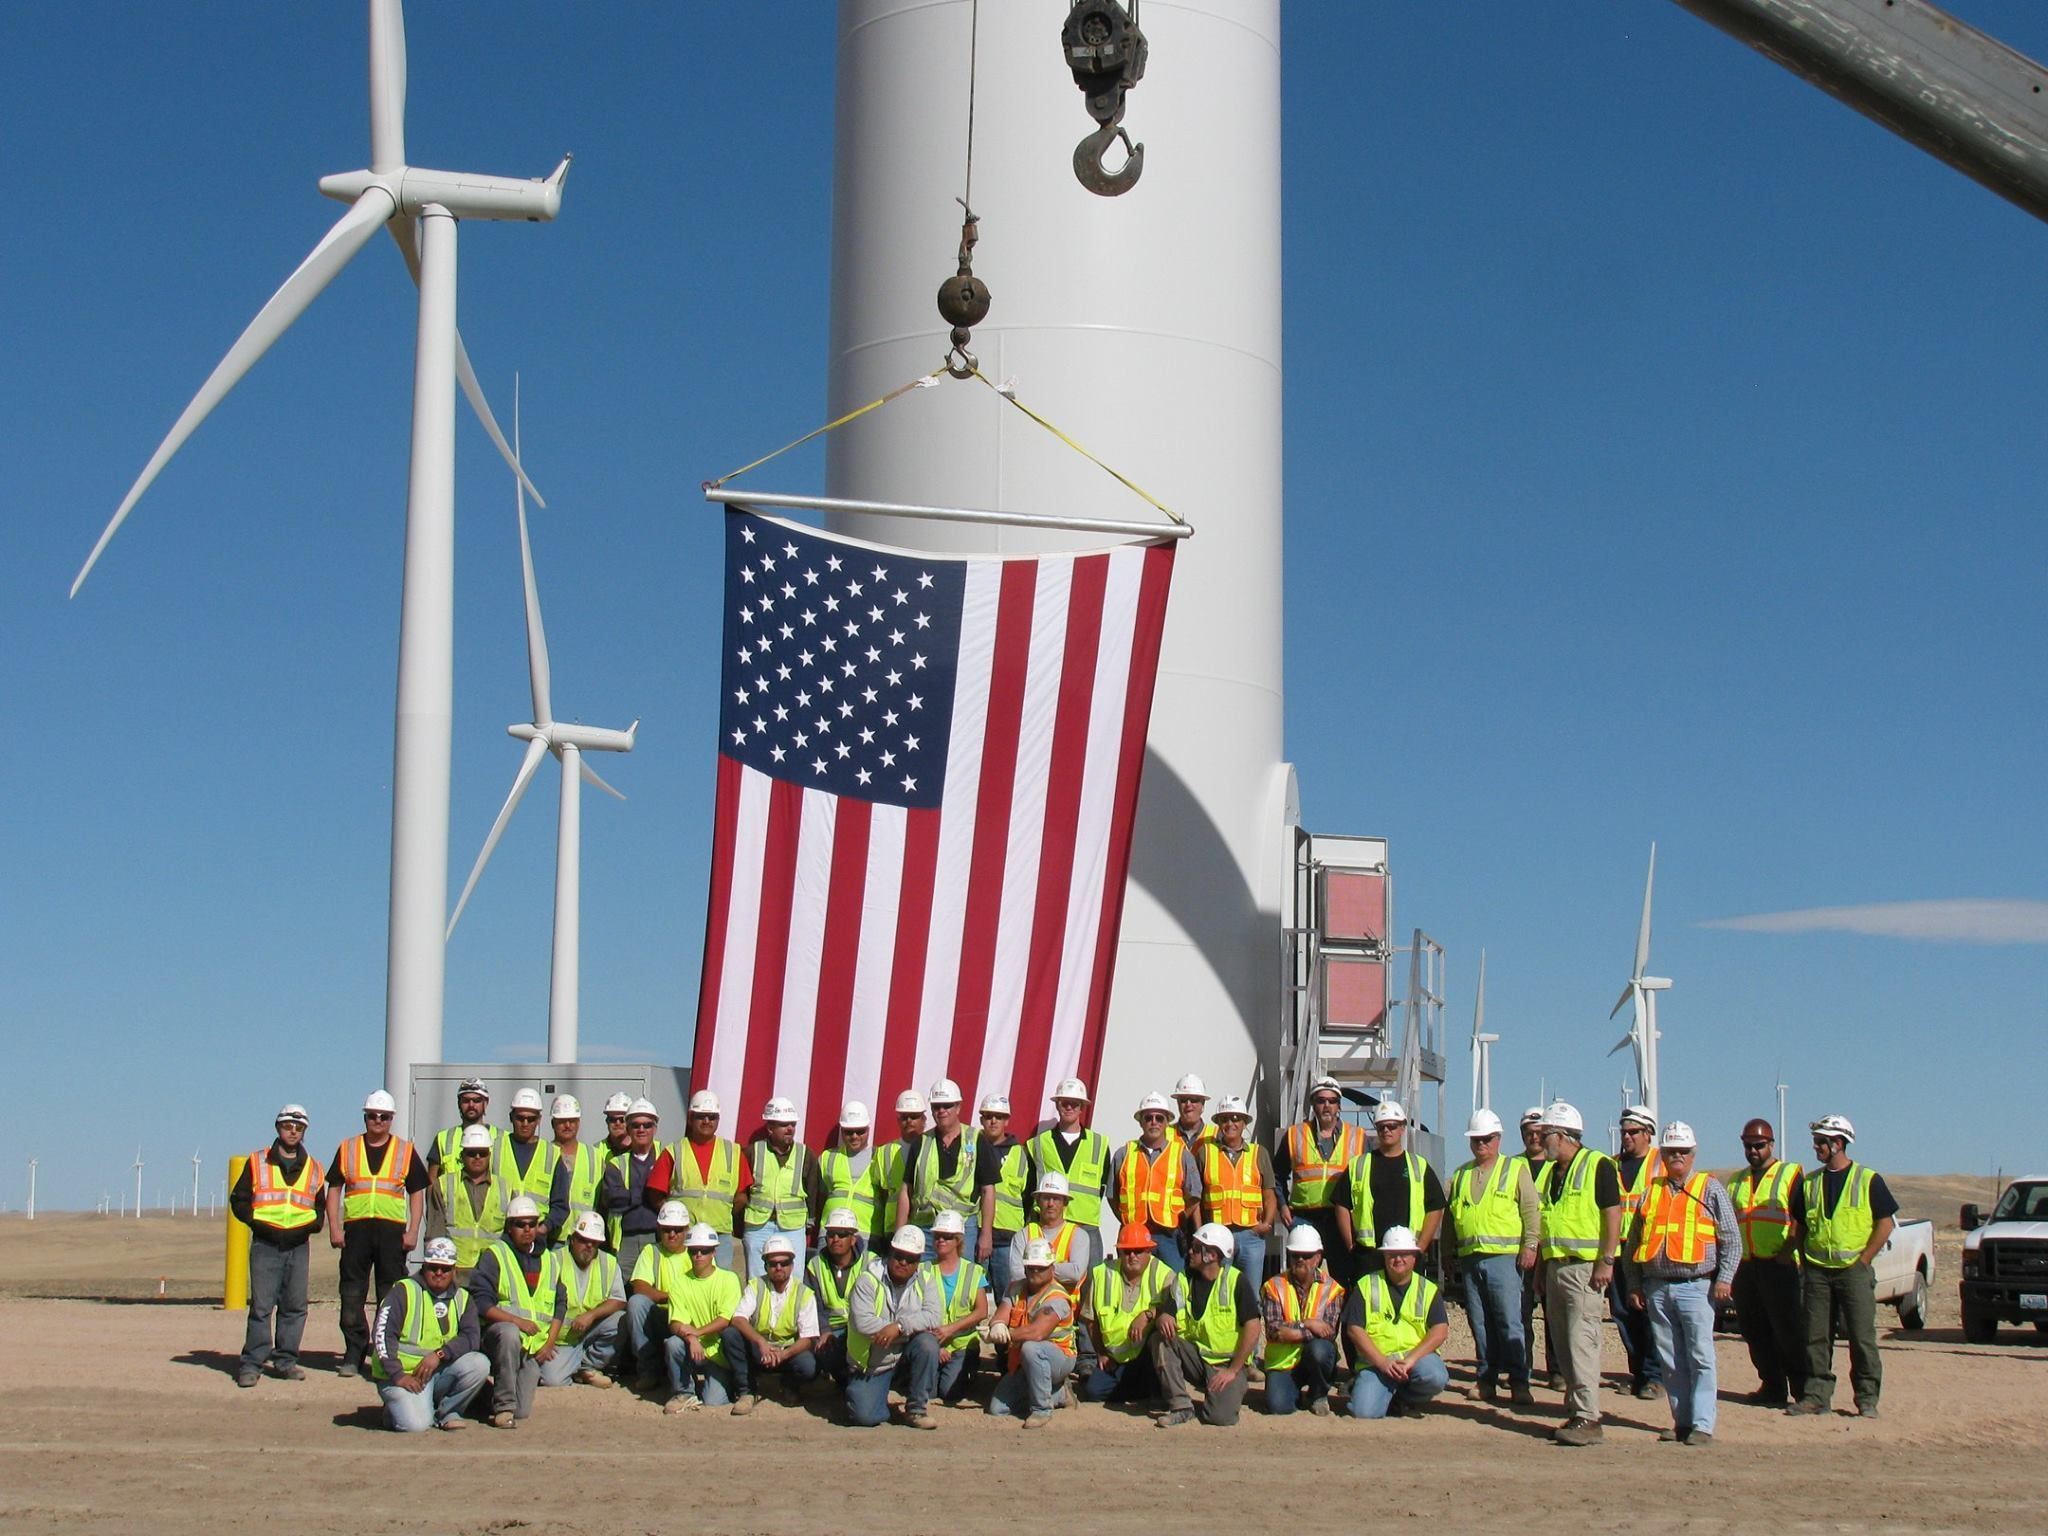 USA wind energy continues rapid growth in 2016